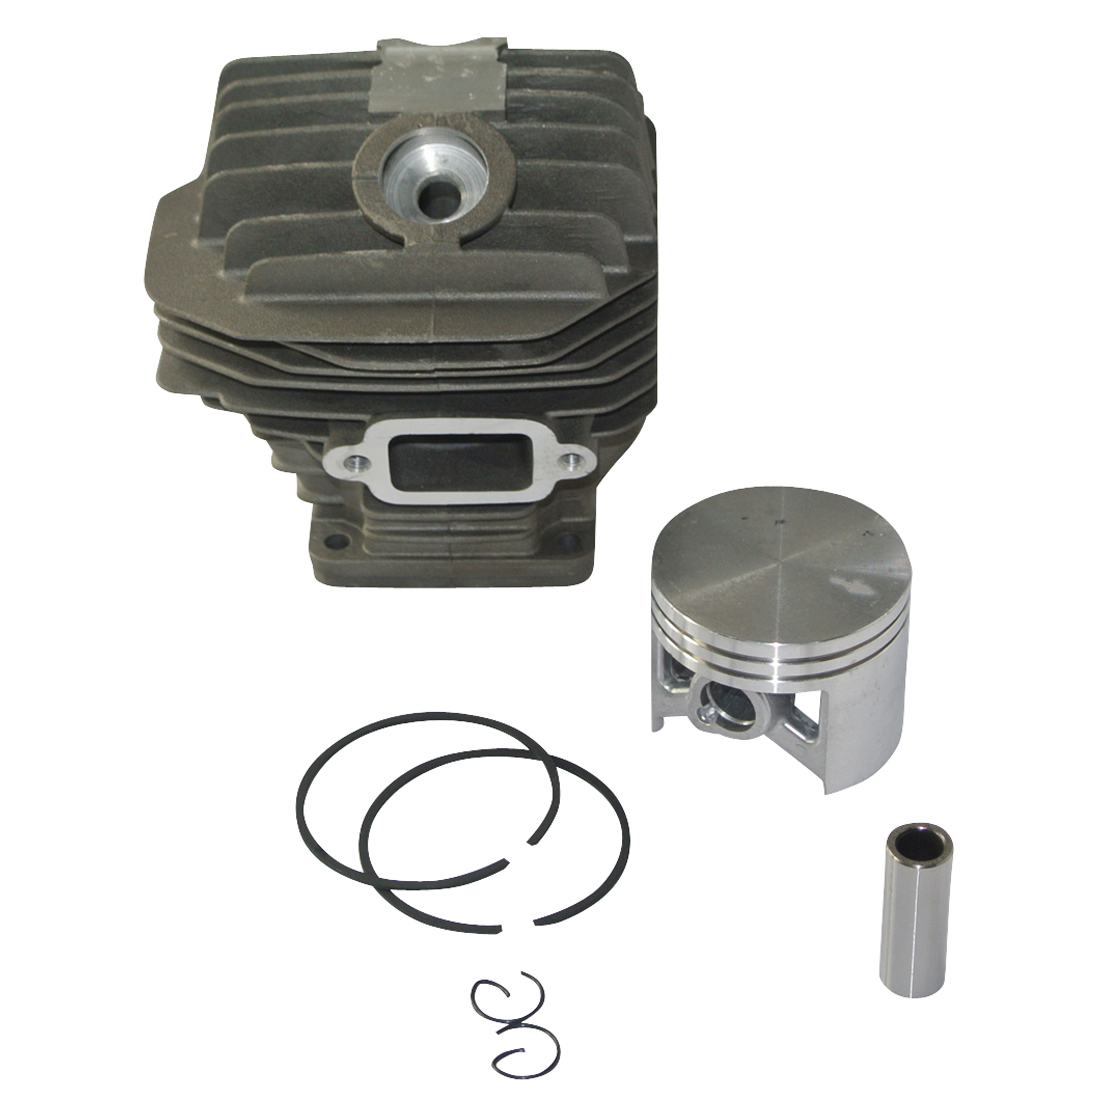 Nikasil 50MM Cylinder Piston Ring Kit Fit STIHL 044 MS440 Chainsaw 1128-020-1226